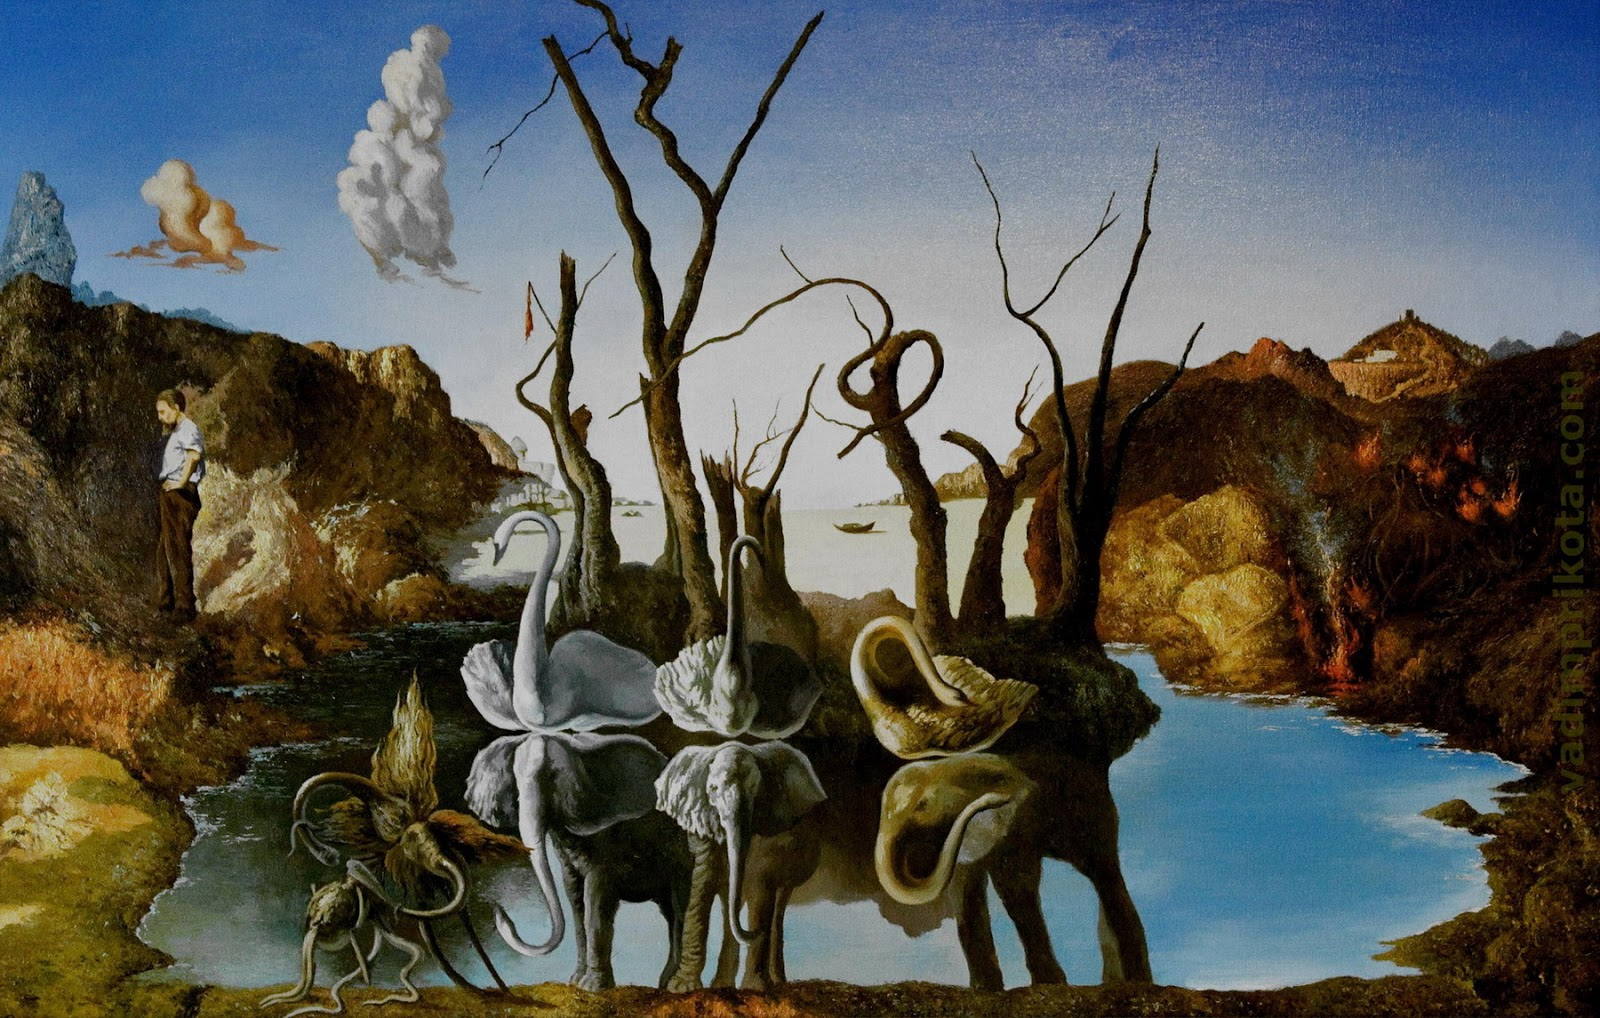 salvador dali paintings wallpapers gallery